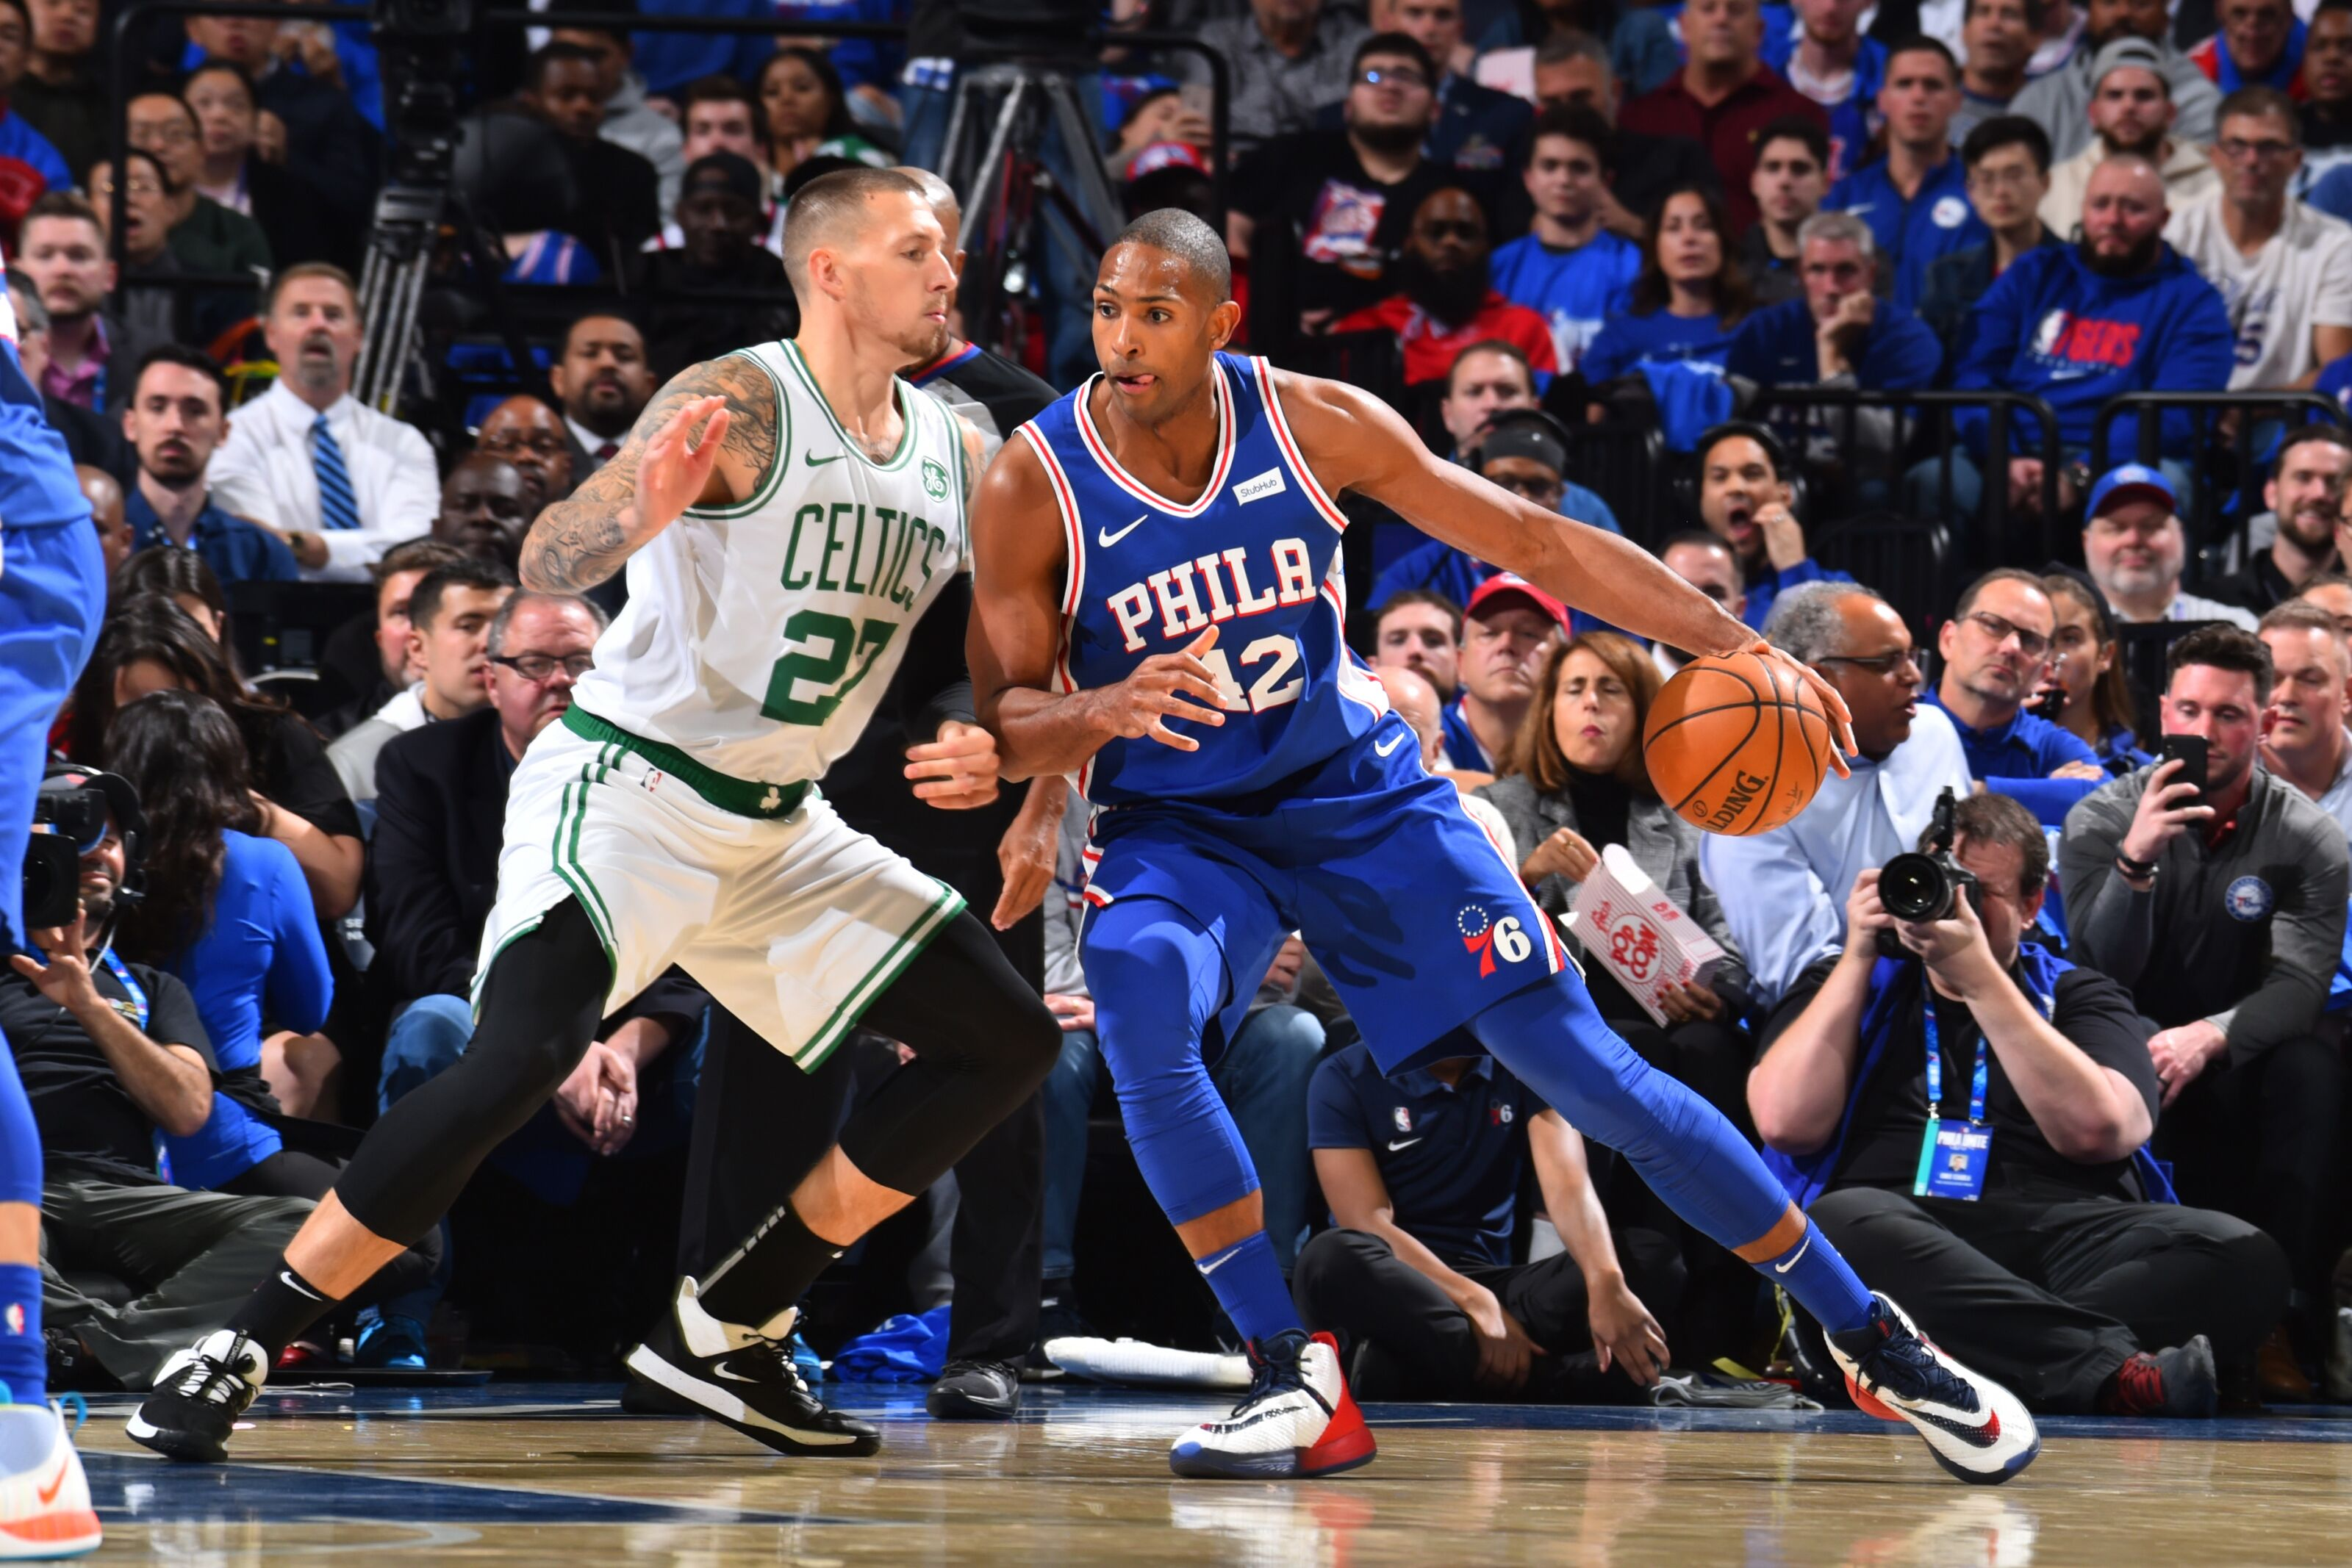 How are the Boston Celtics managing to dominate without Al Horford?